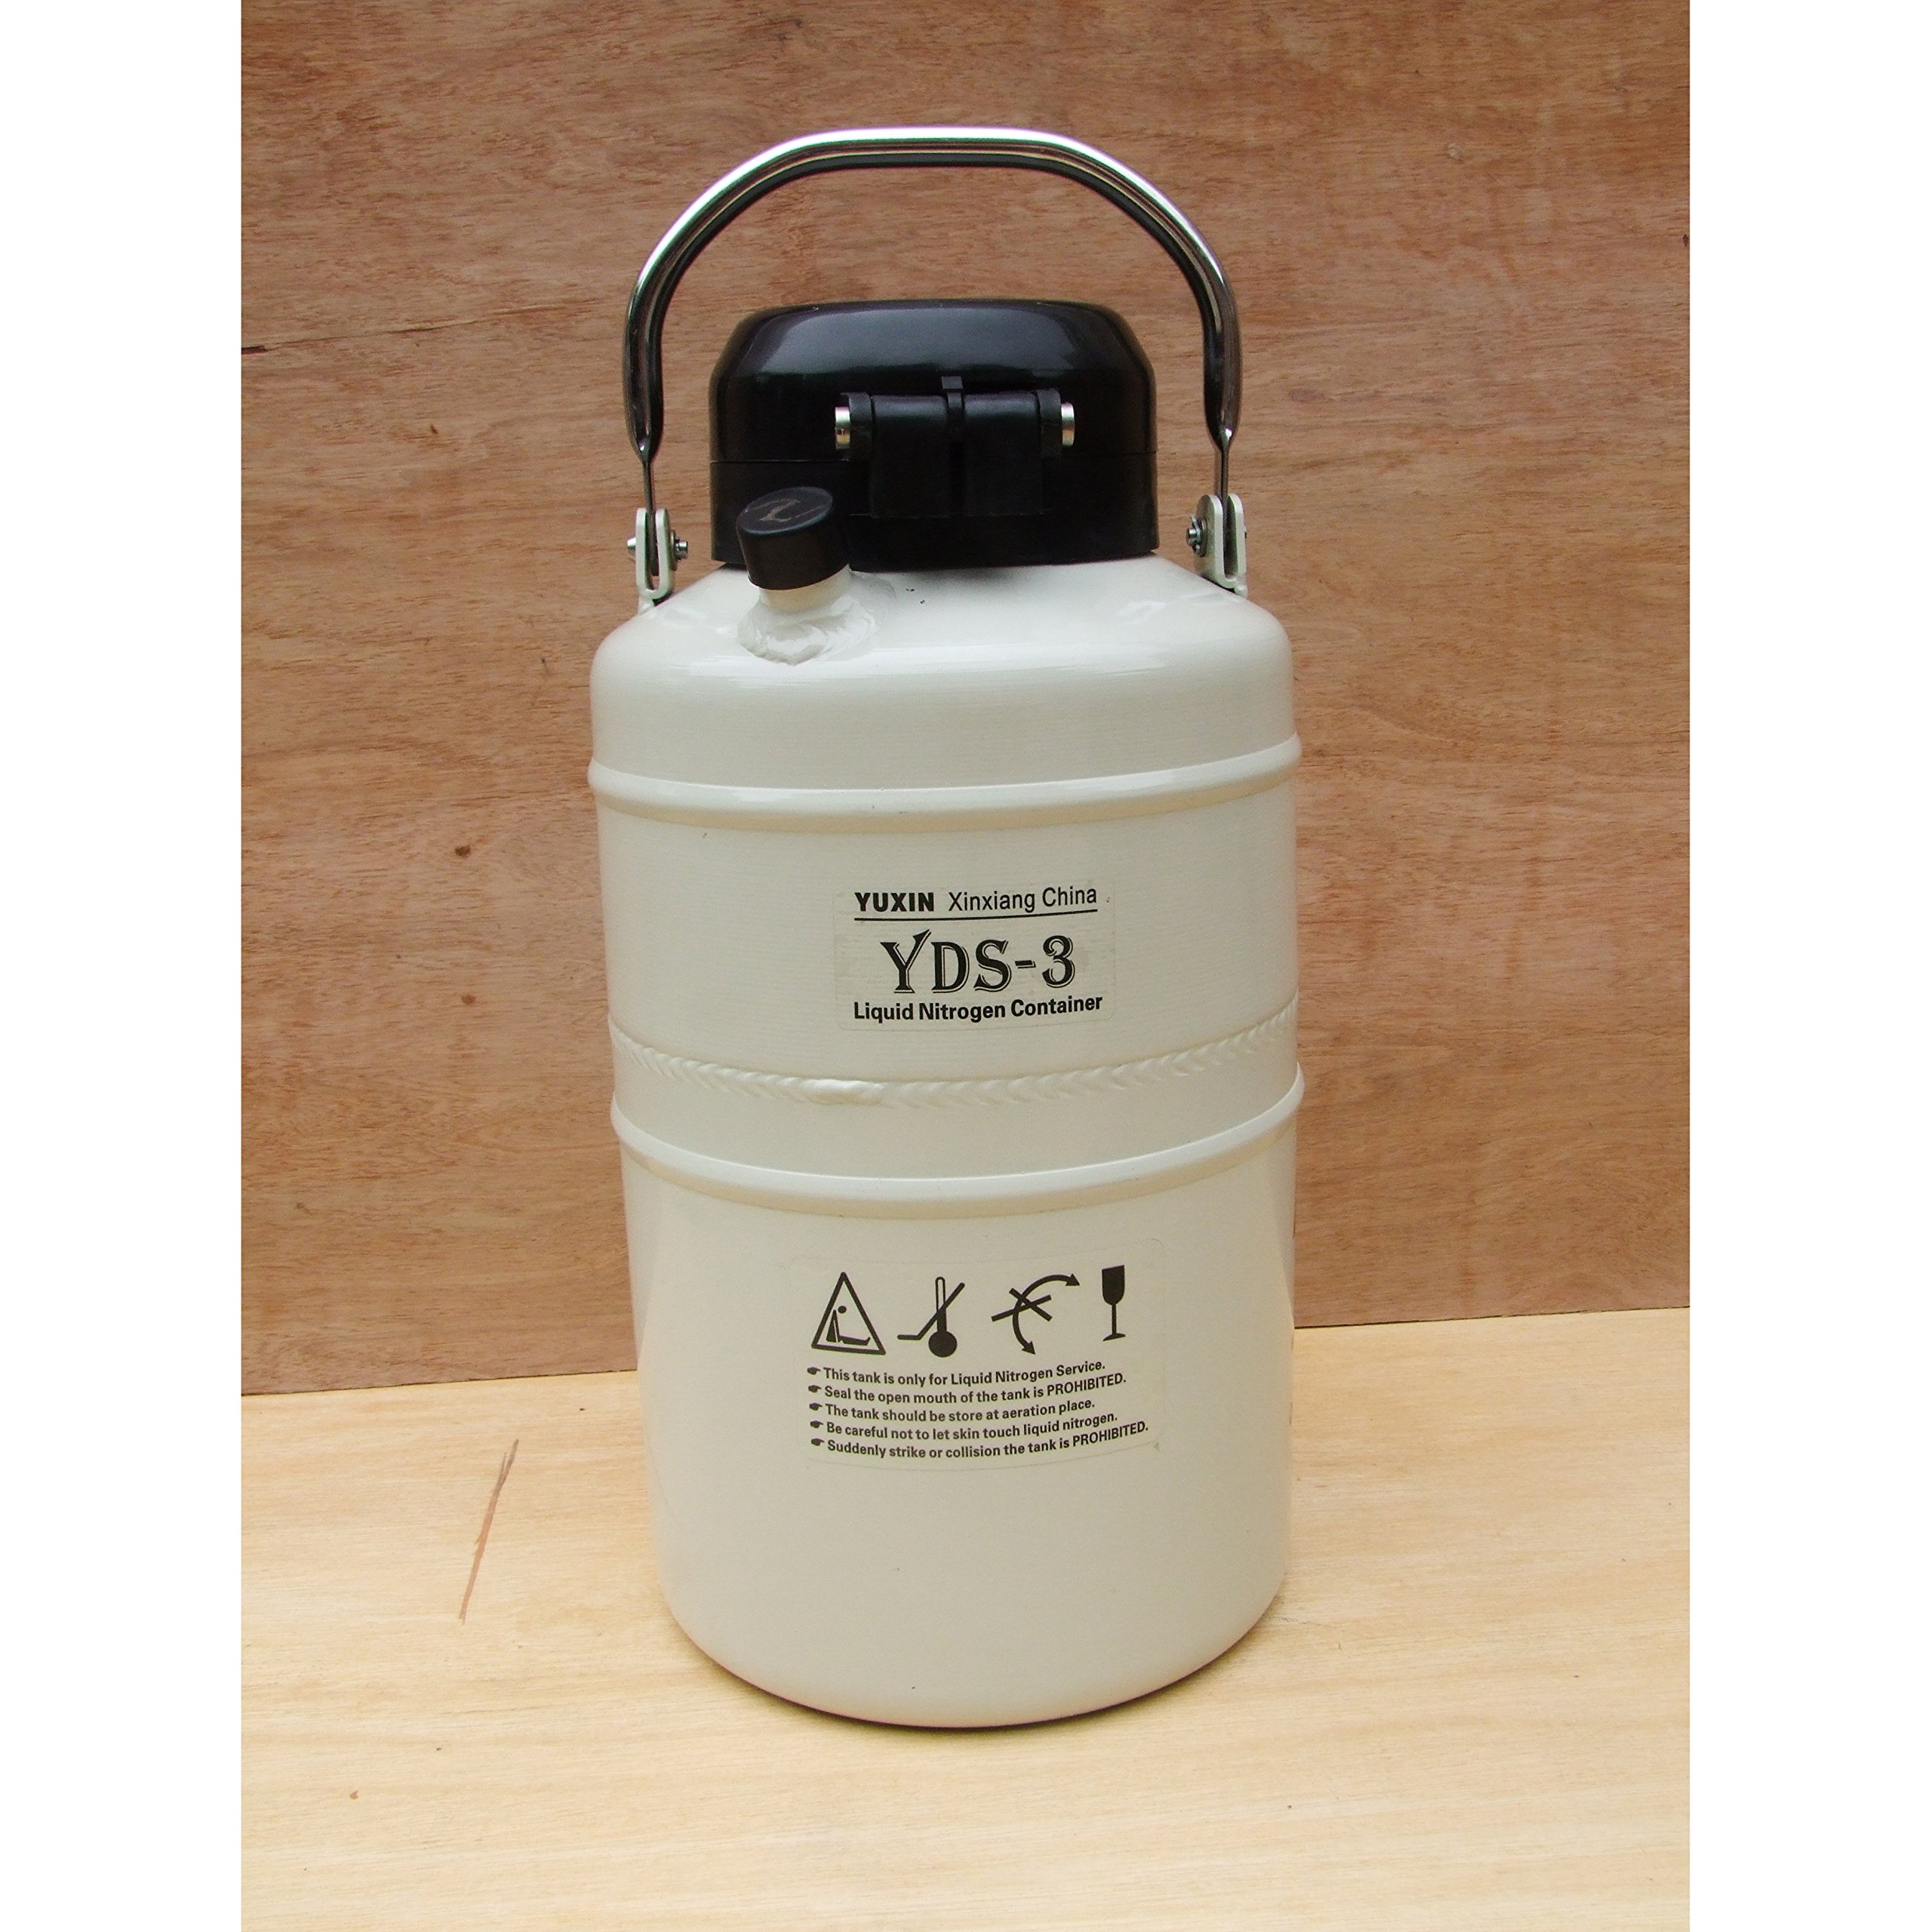 HFS (Tm) 3 L Cryogenic Container Liquid Nitrogen Ln2 Tank with Straps and Carry Bag with 6 Canisters. Dewar Tank